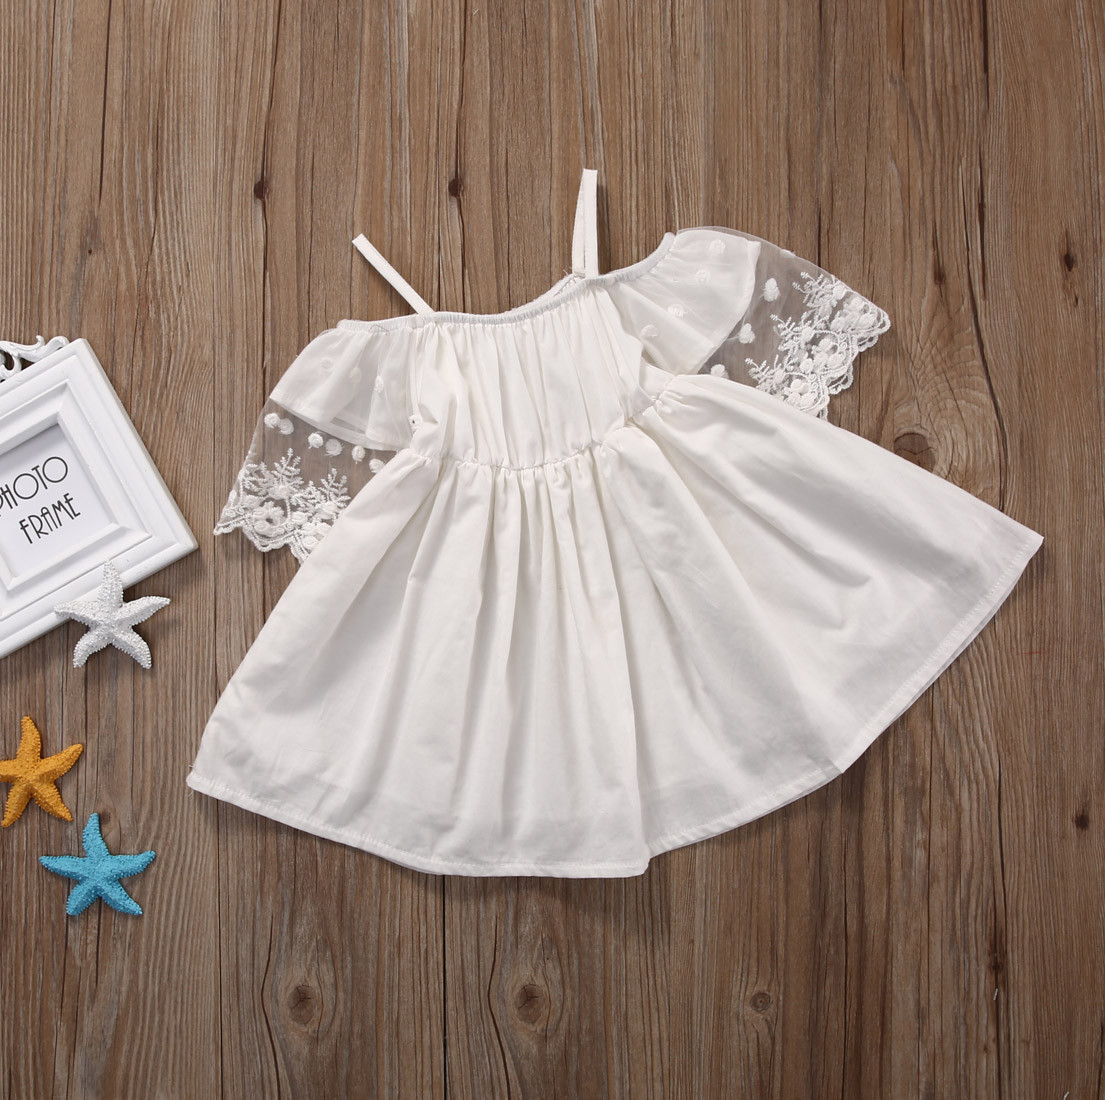 Lace Girl Clothing Princess Dress Kid Baby Party Wedding Pageant Formal Mini Cute White Dresses Clothes Baby Girls 9